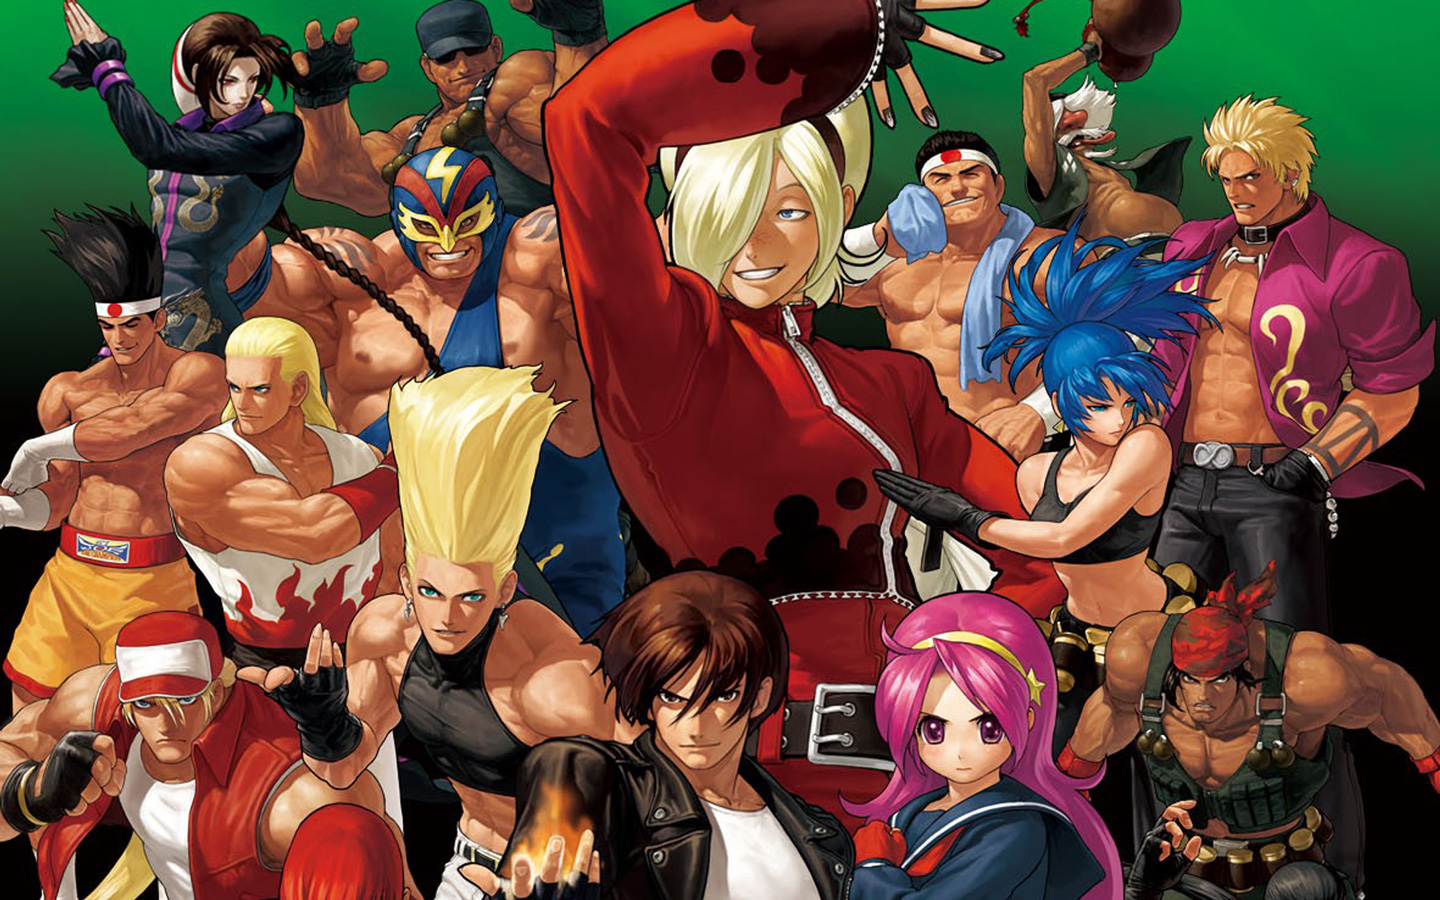 Free The King of Fighters XII Wallpaper in 1440x900